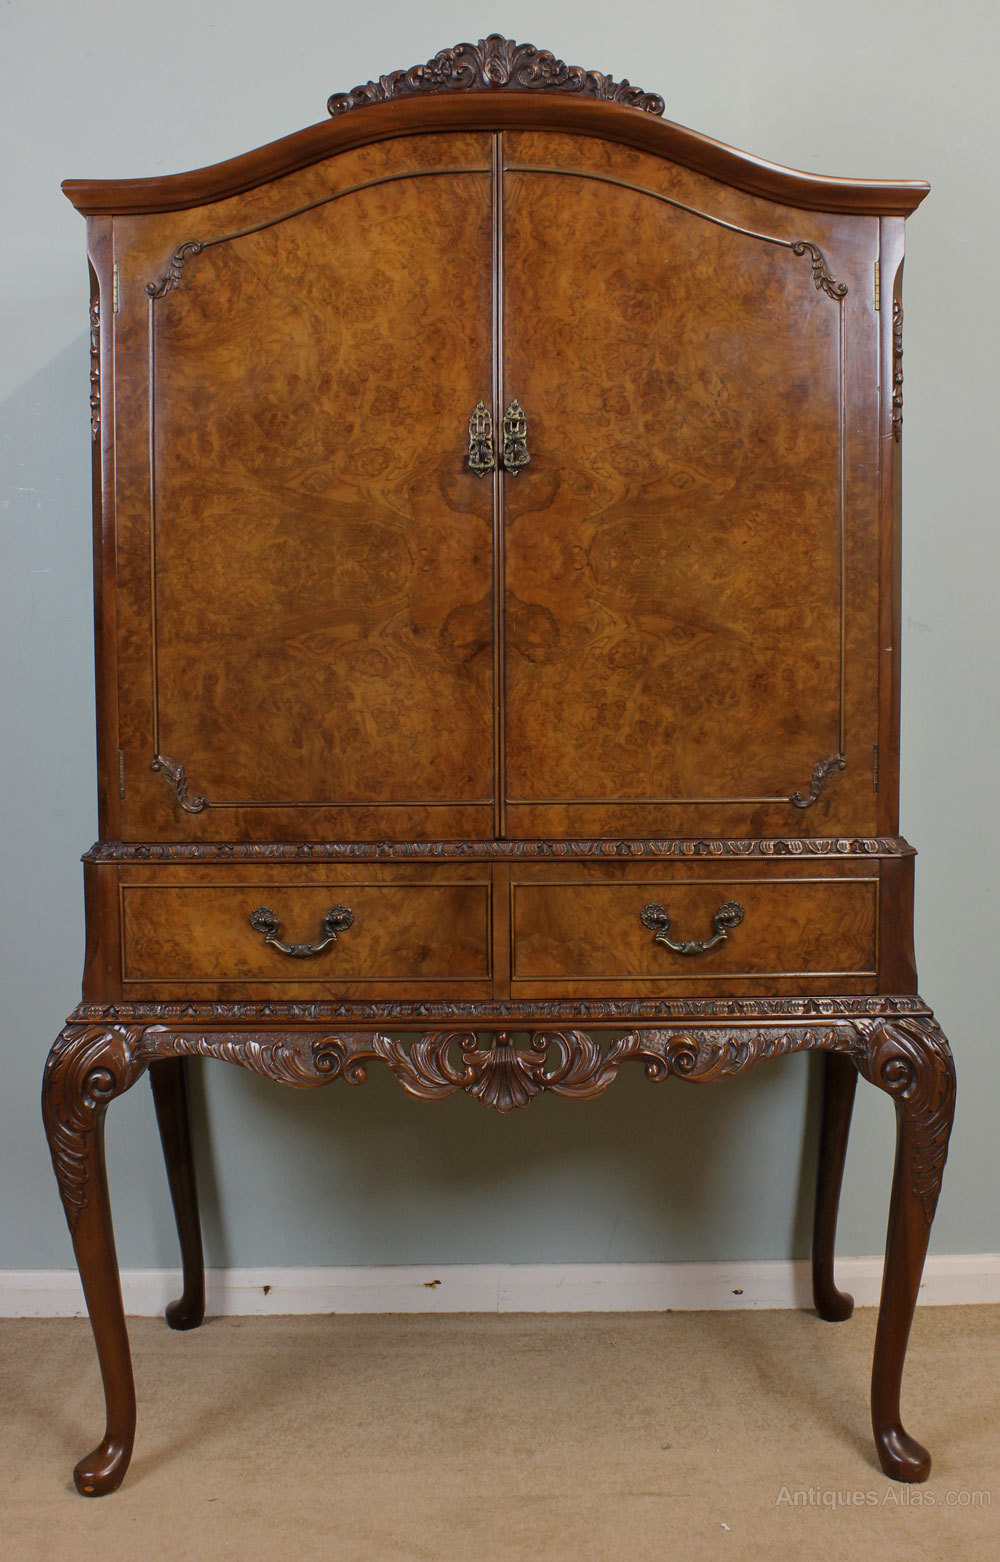 Antique Burr Walnut Cocktail, Drinks, Cabinet ... - Antiques Atlas - Antique Burr Walnut Cocktail, Drinks, Cabinet